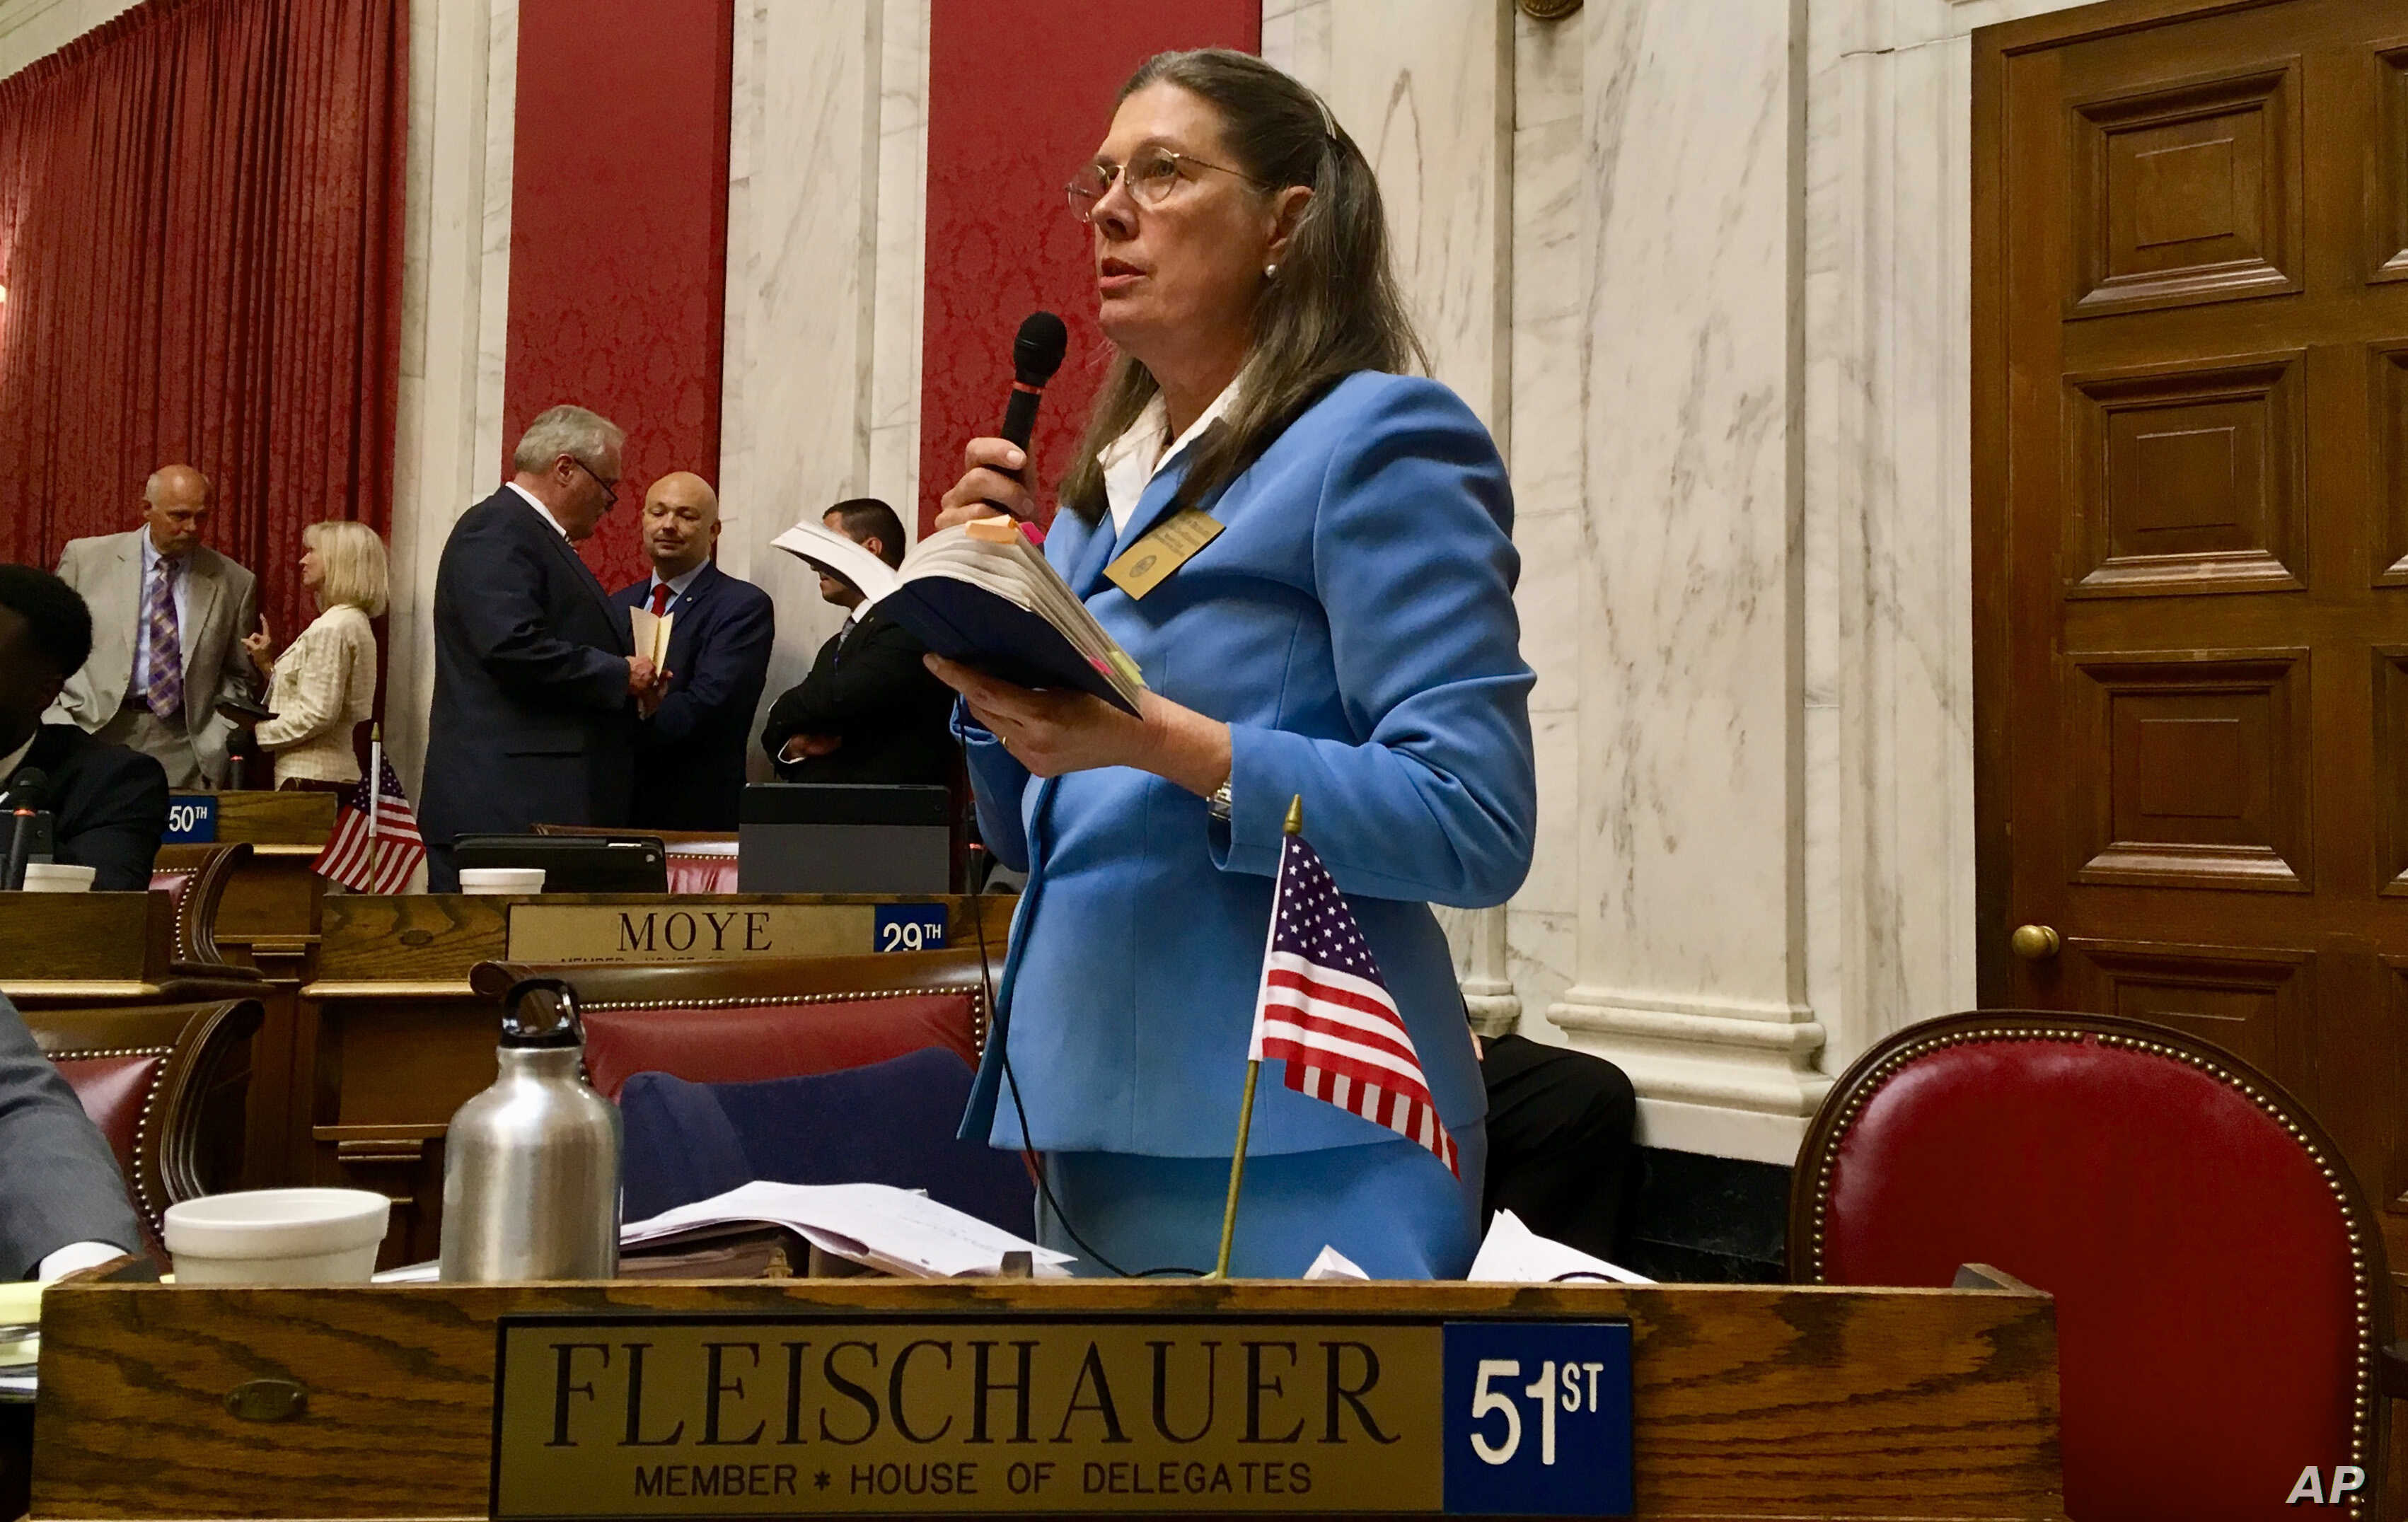 Democratic Delegate Barbara Evans Fleischauer asks a question, Aug. 13, 2018, during an impeachment hearing involving West Virginia Supreme Court justices in the House of Delegates chambers in Charleston, W.Va.